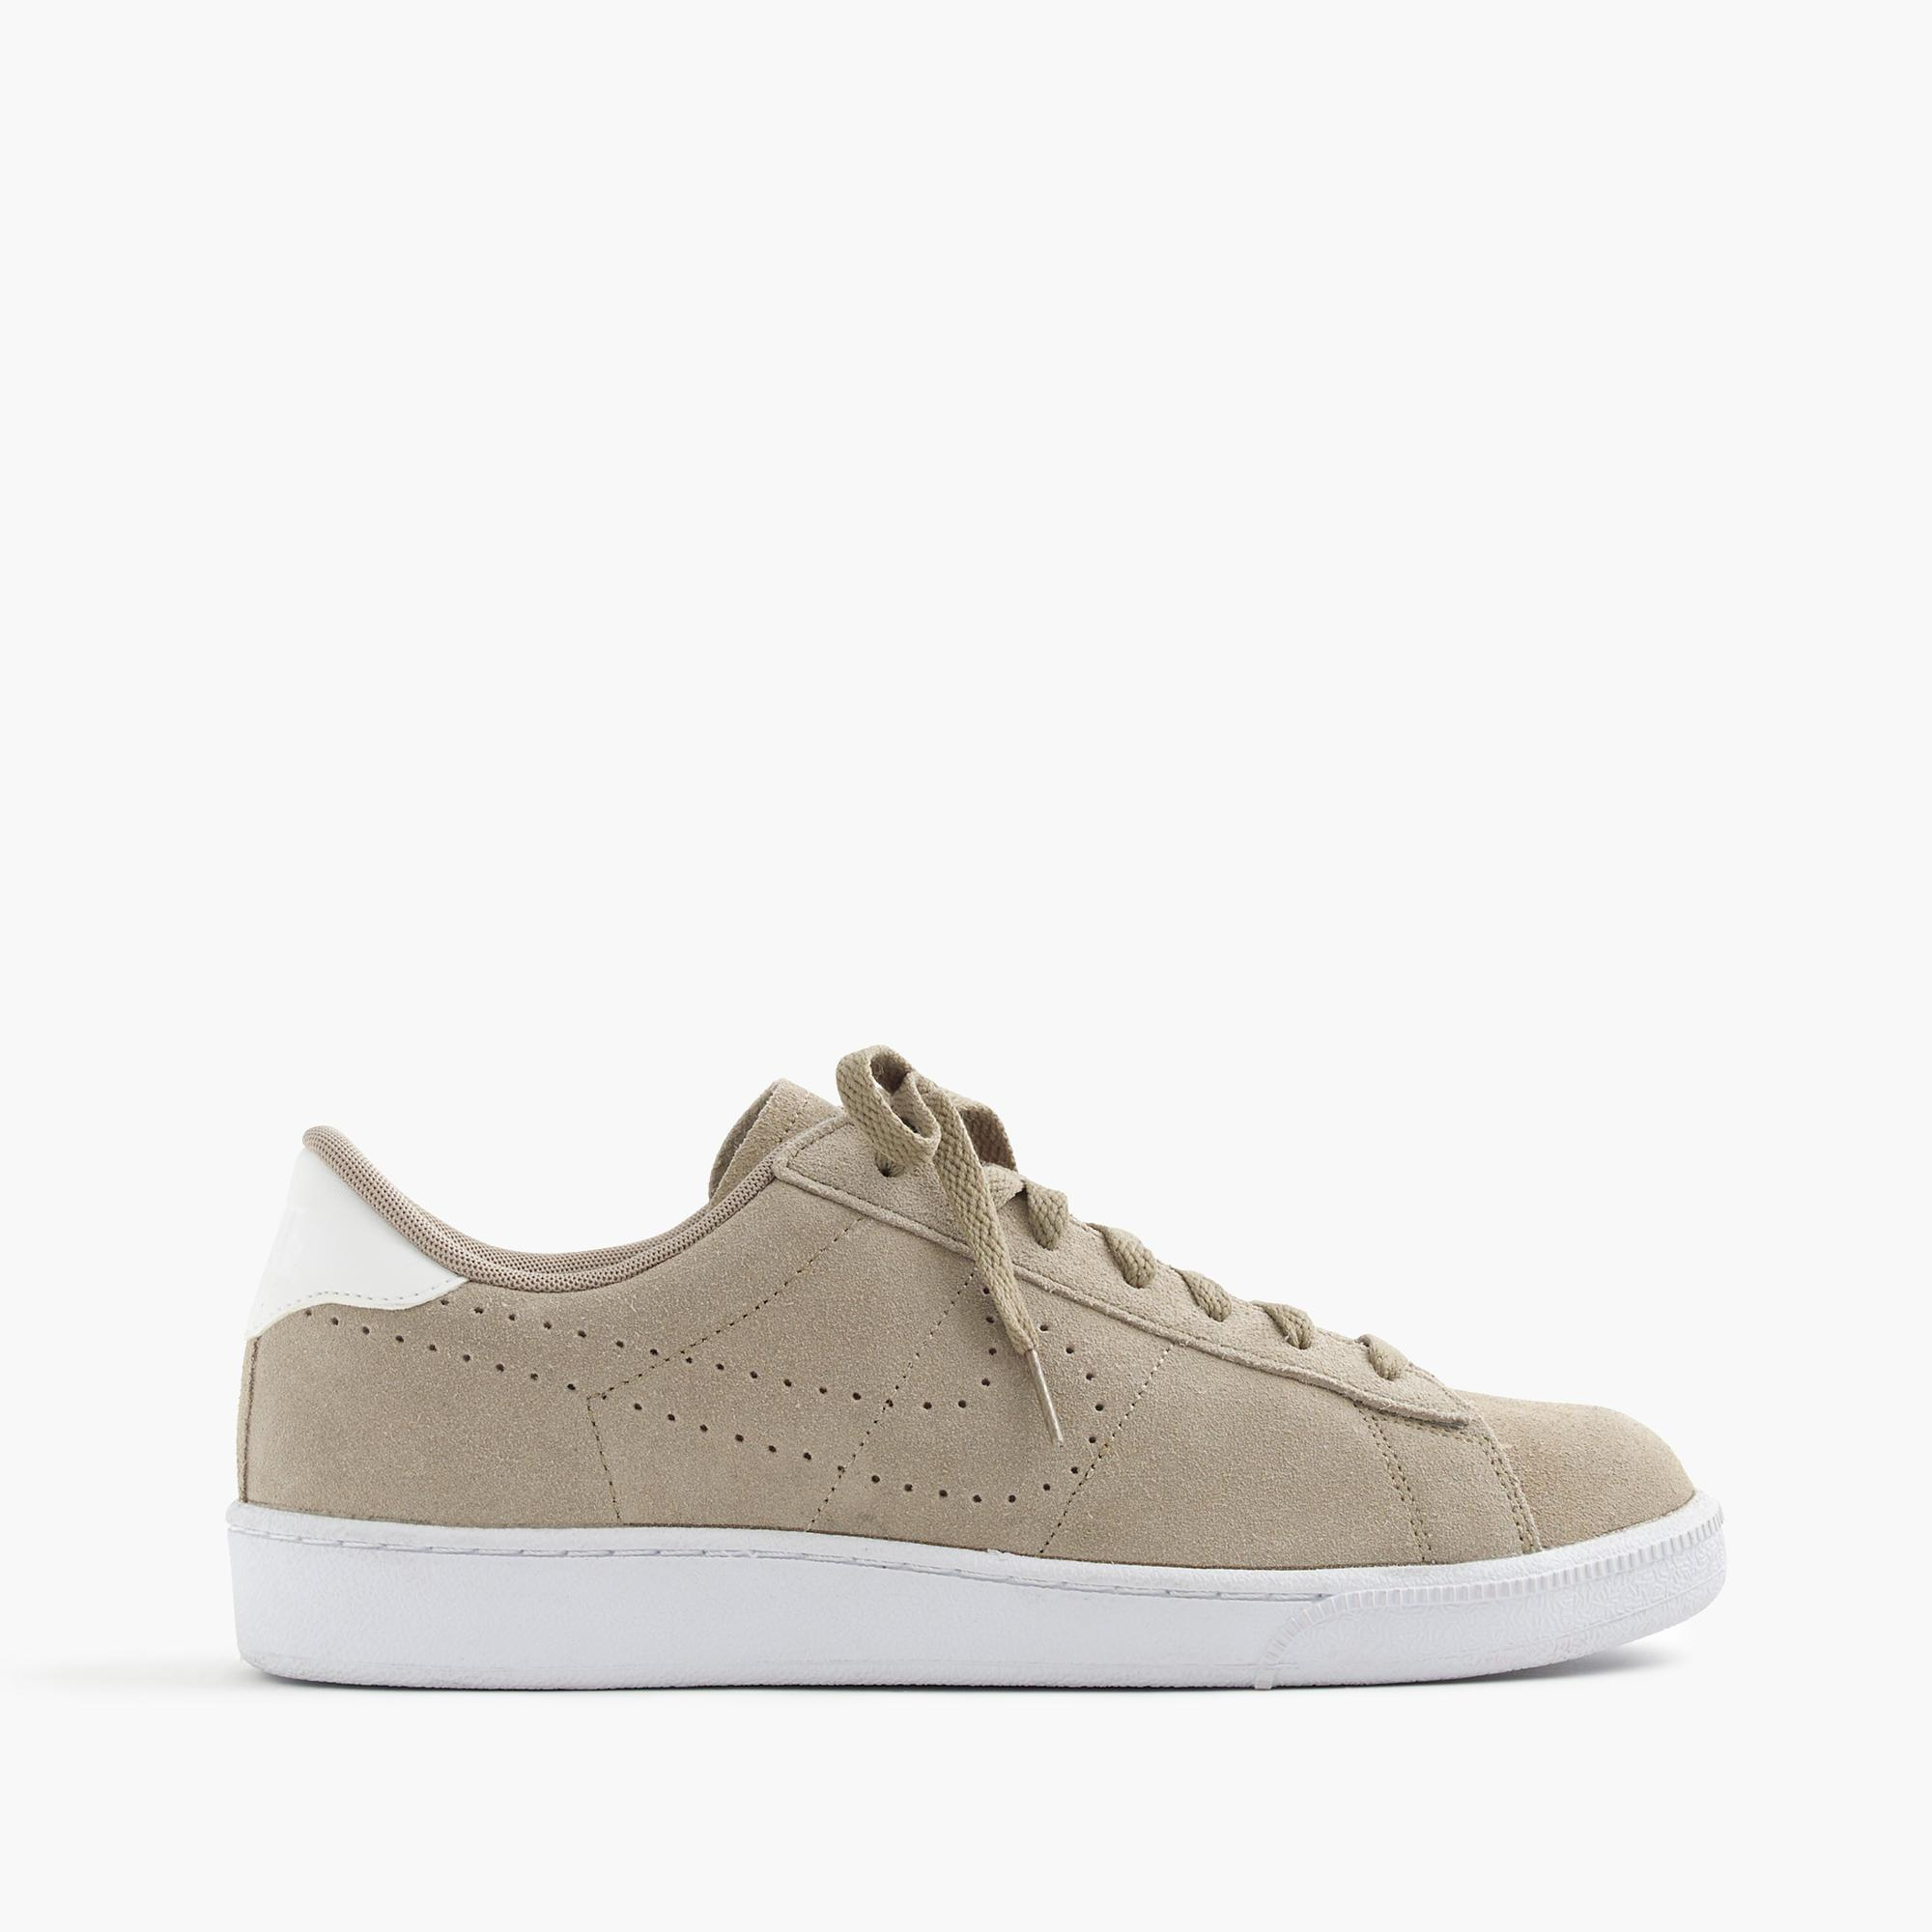 j crew nike tennis classic sneakers in suede in gray for